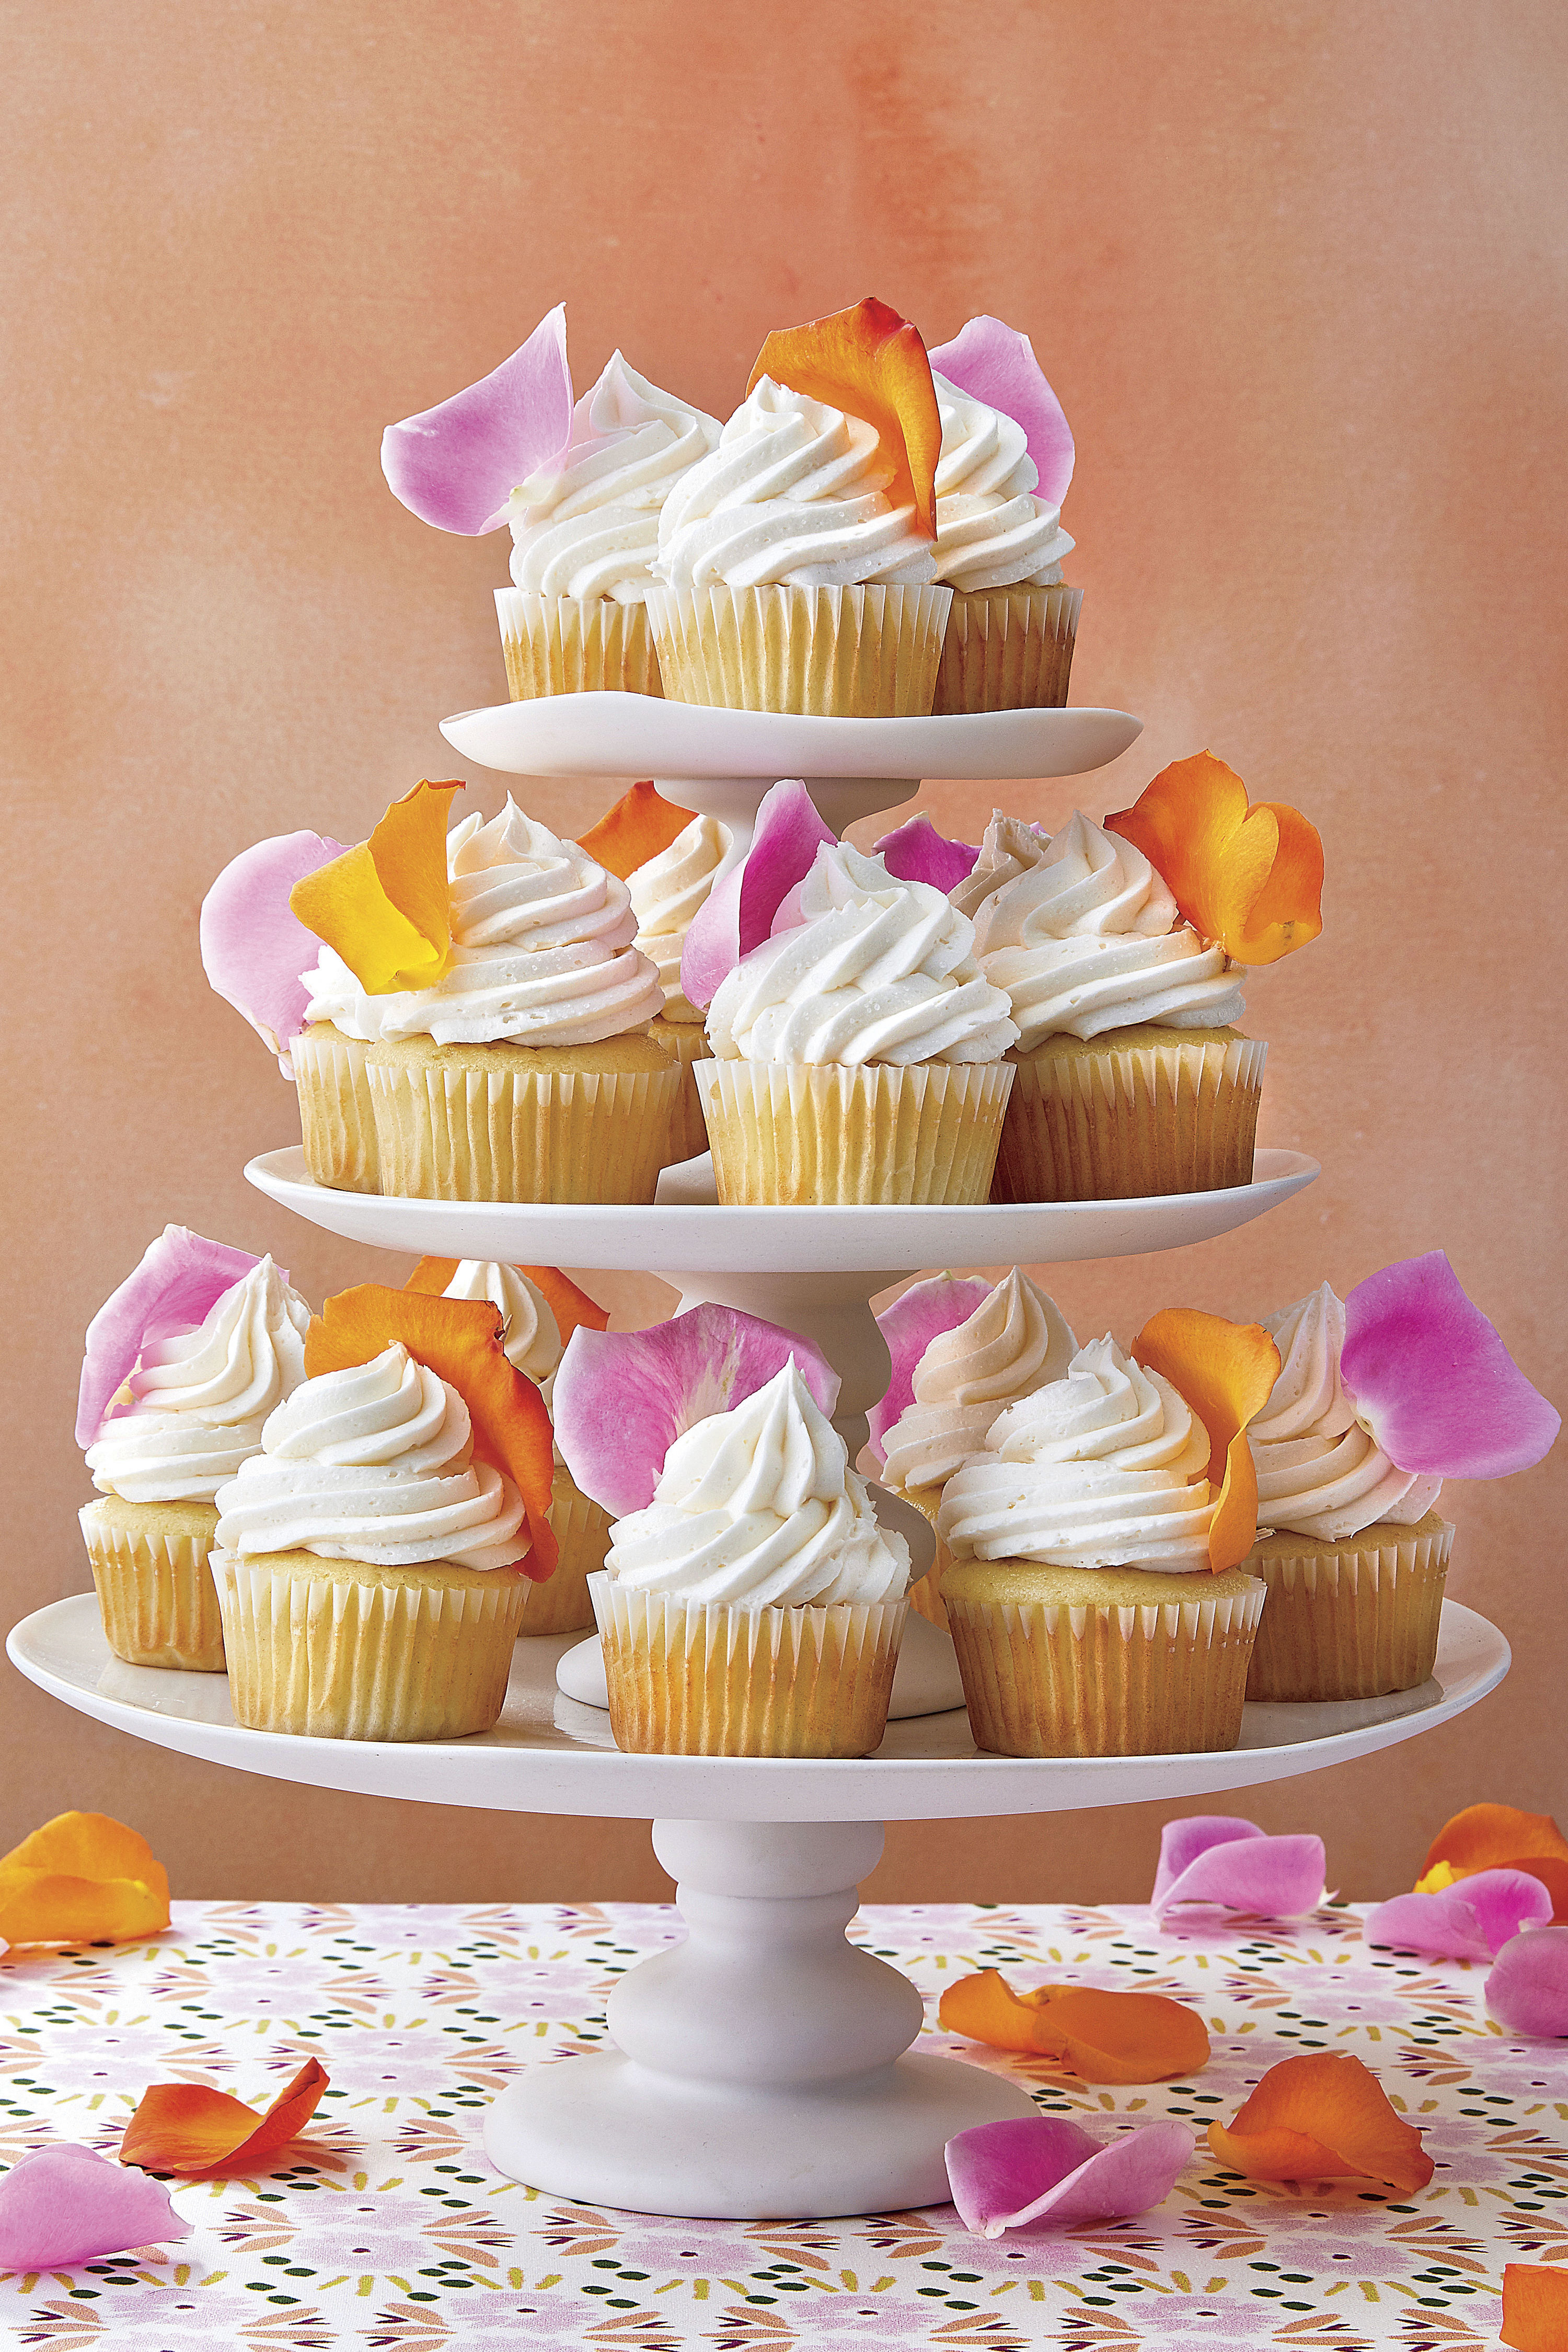 White Cupcakes with Rose Petals